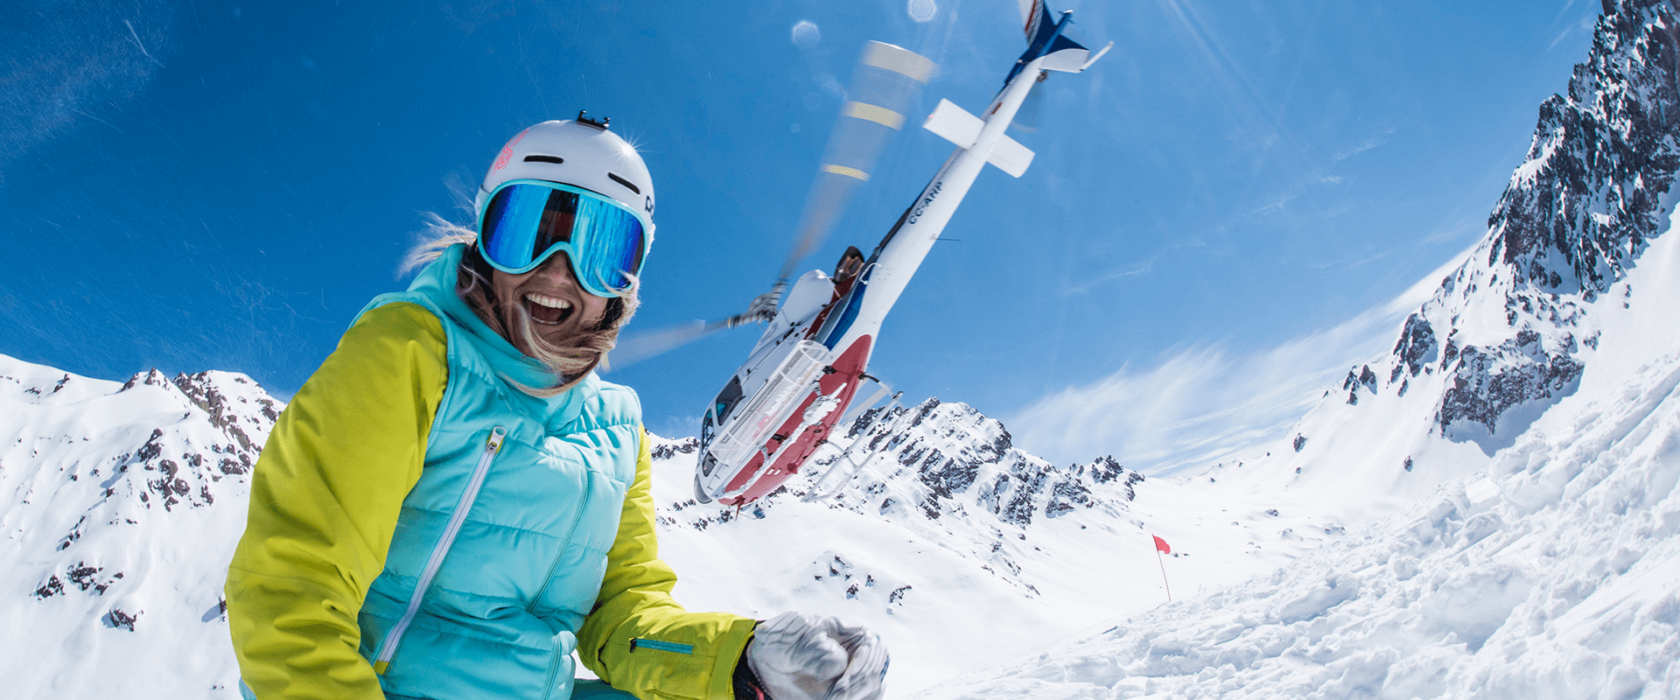 Heli Ski in the Andes Mountains